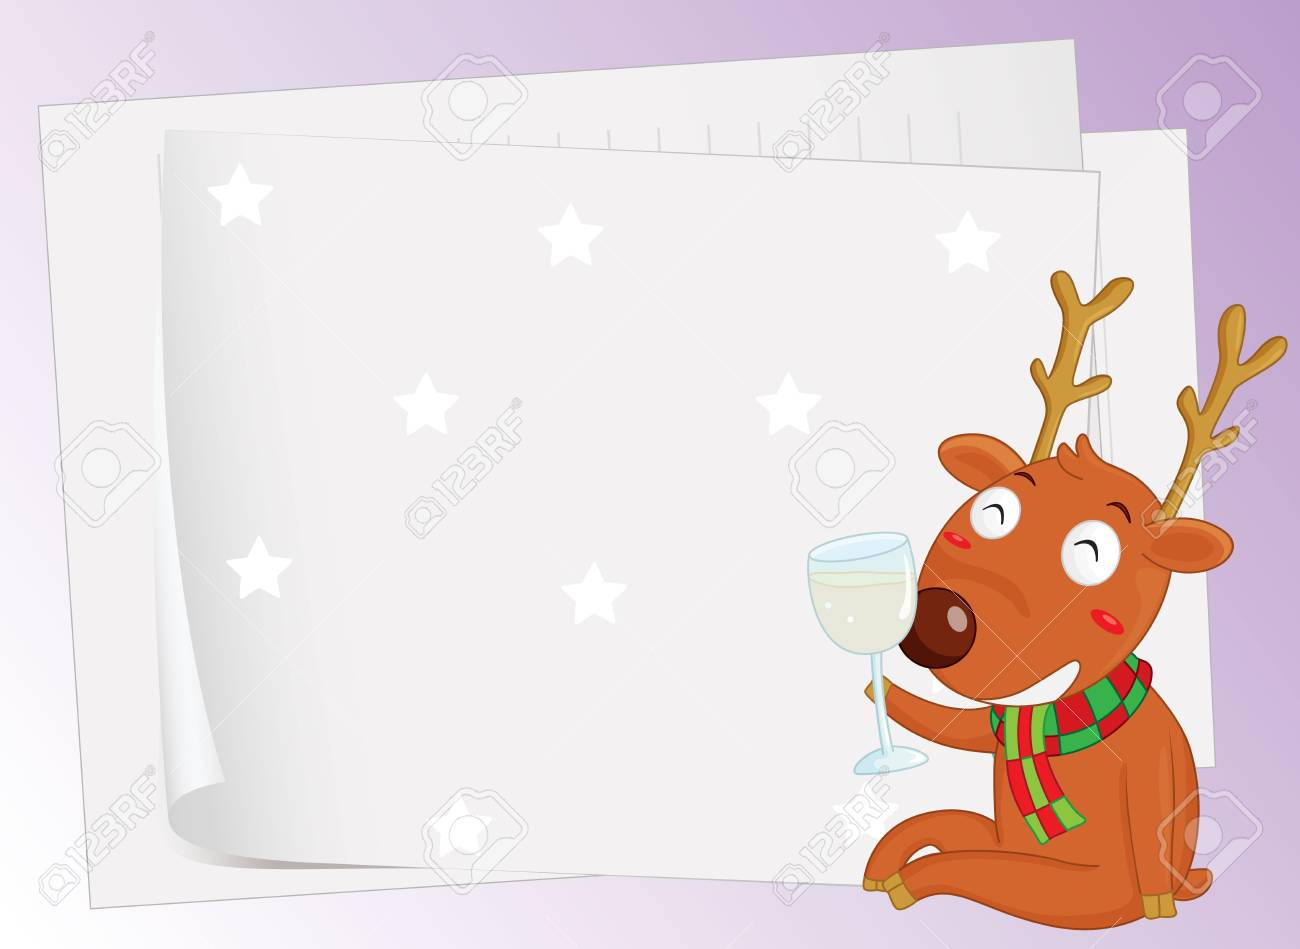 illustration of paper sheets and a reindeer on a color background Stock Vector - 15946774